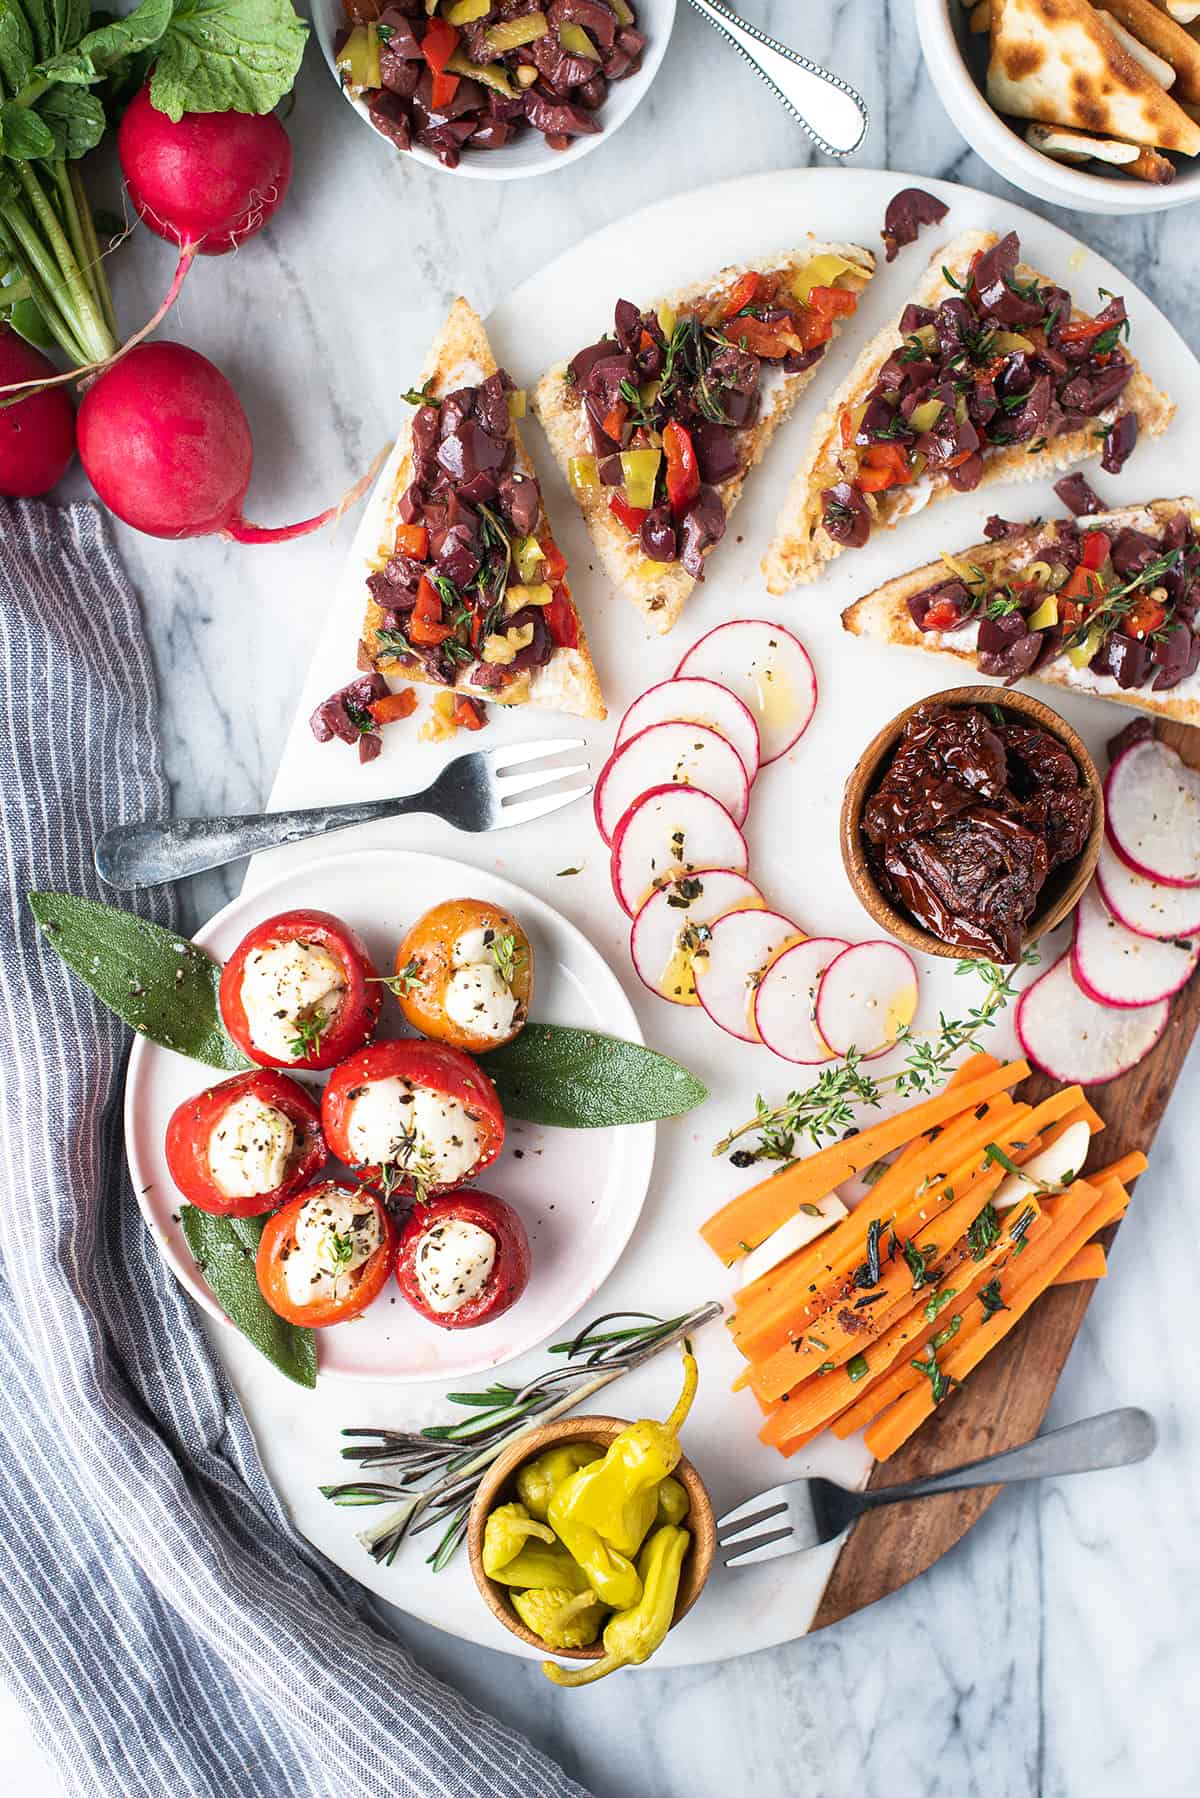 party platter on white marble with olive tapenade, veggies, stuffed peppers